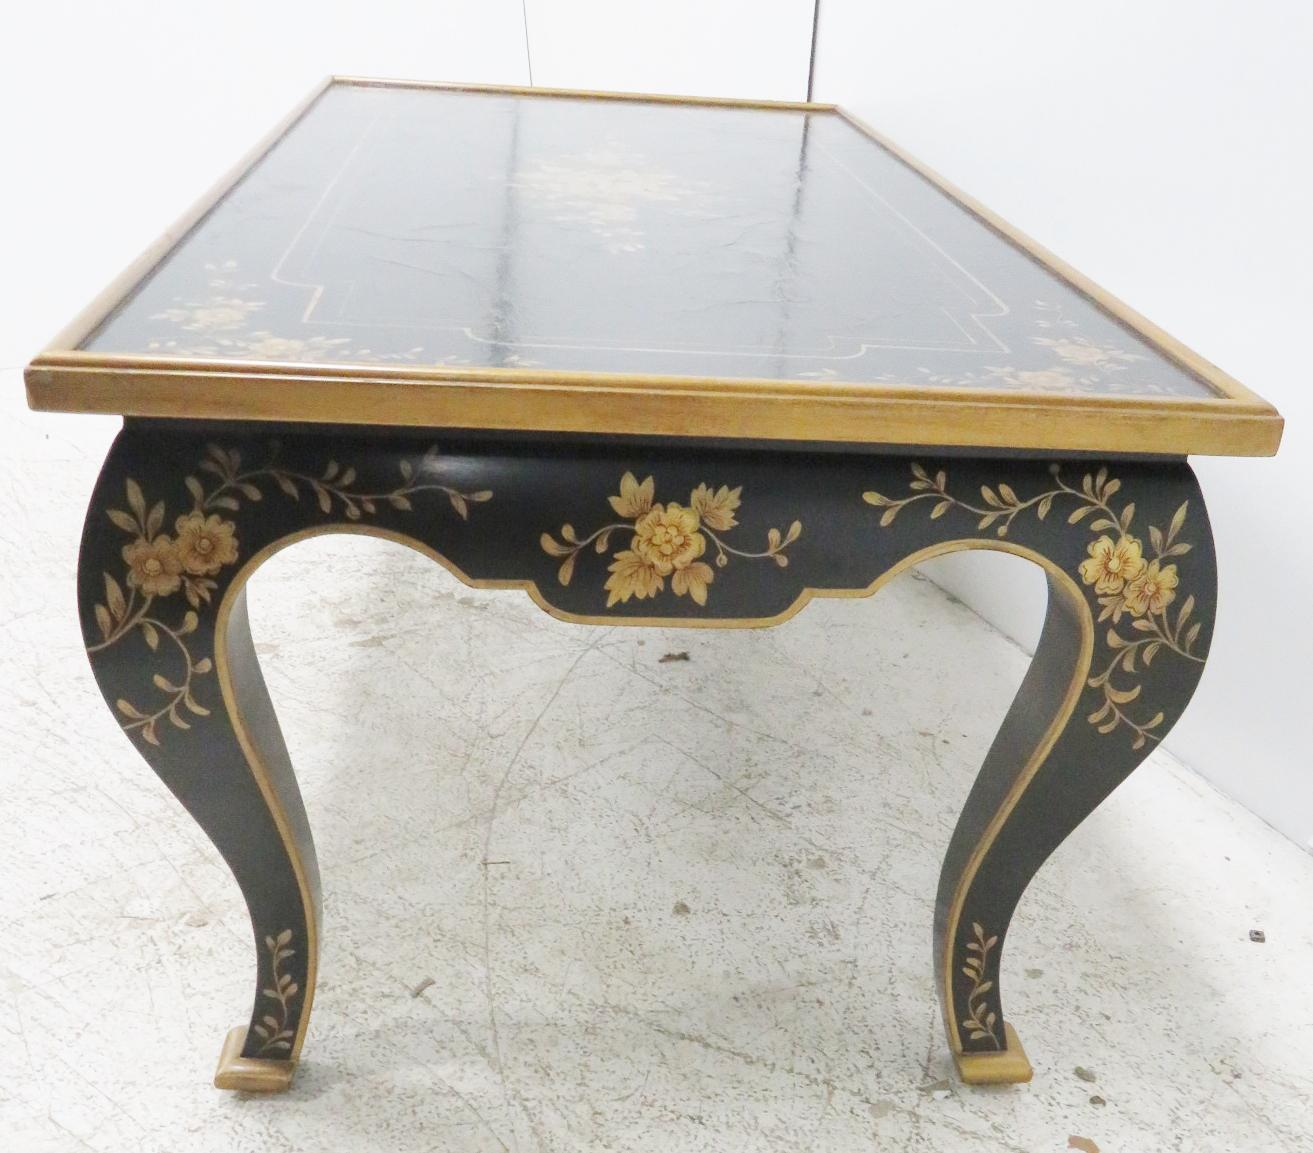 Charmant Black Chinoiserie Leather Top Coffee Table With Overall Gold Floral  Decoration.